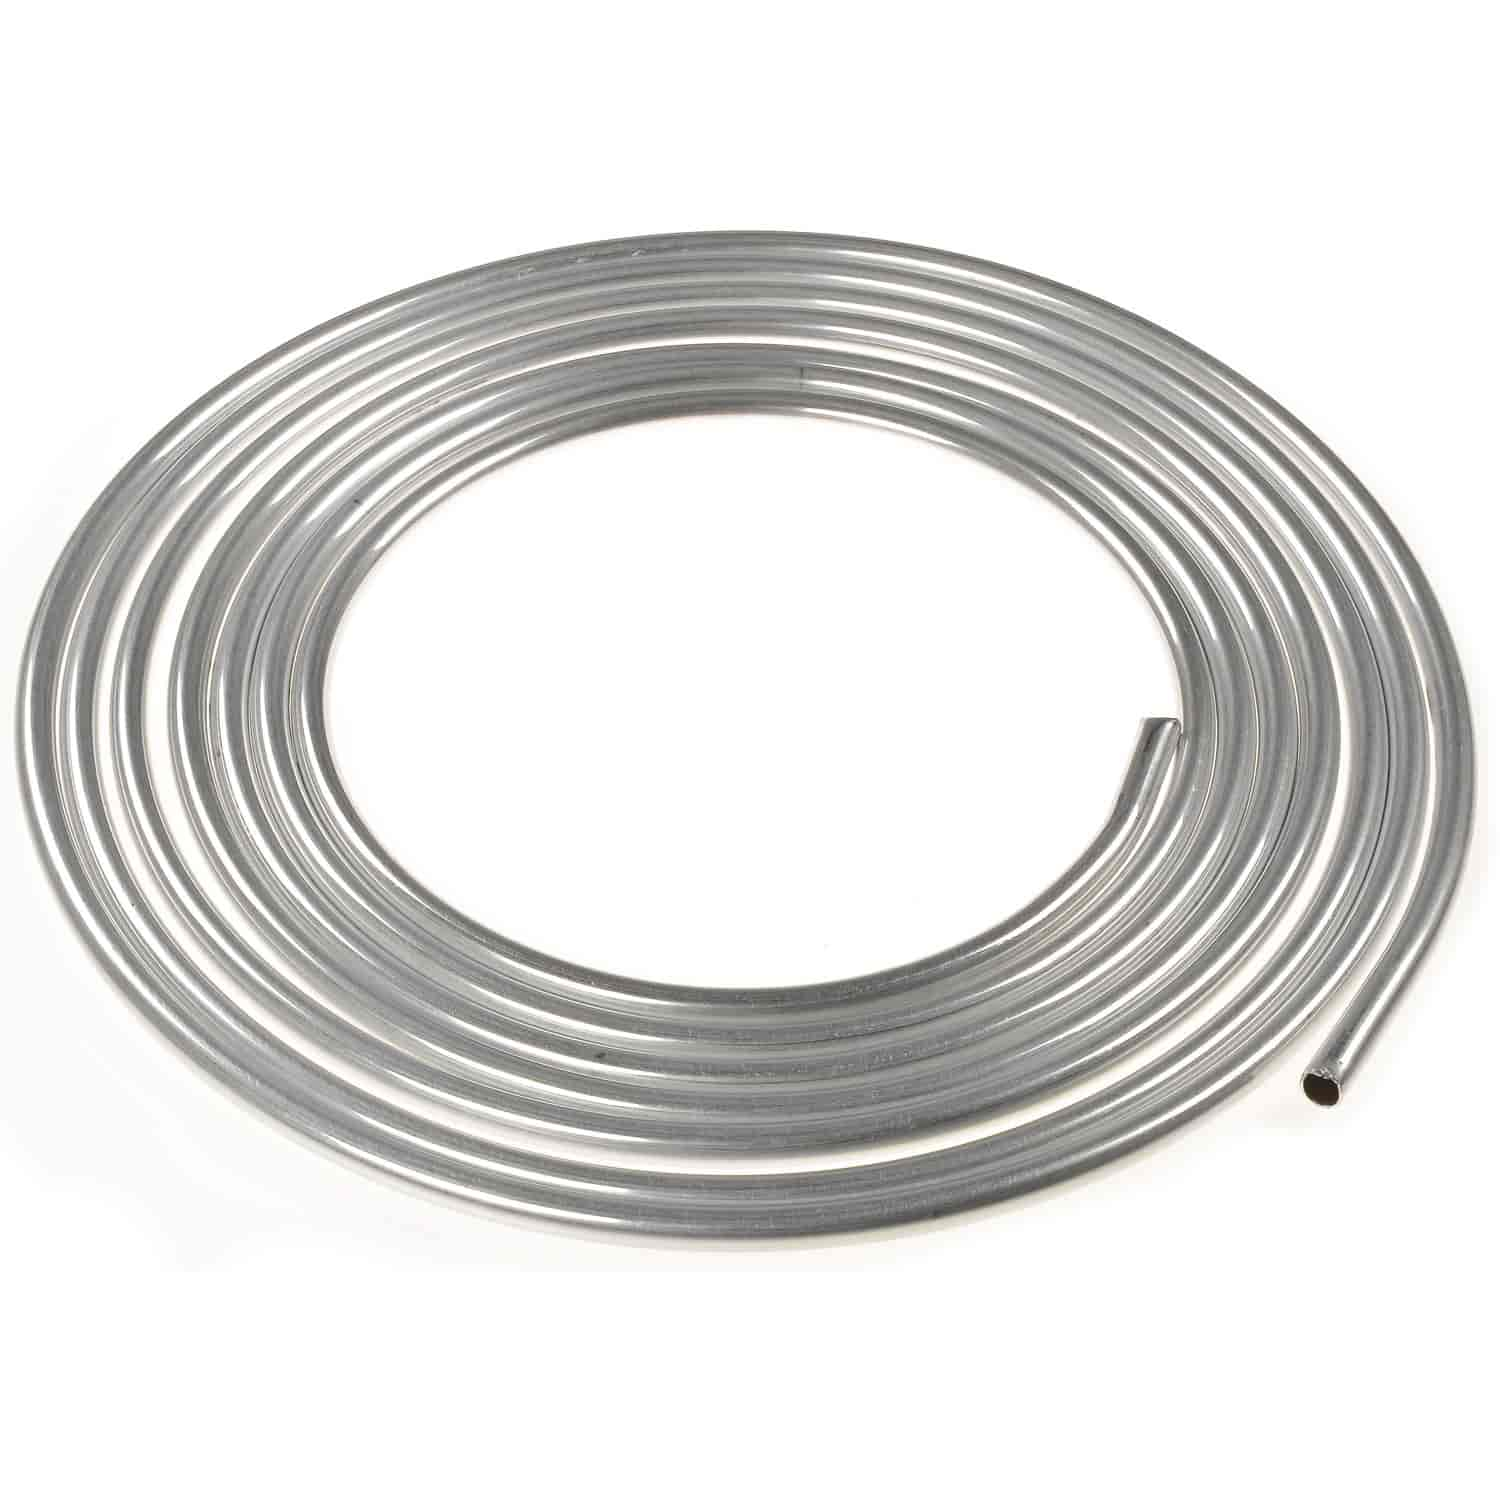 JEGS Performance Products 15101 - JEGS Aluminum Fuel Line